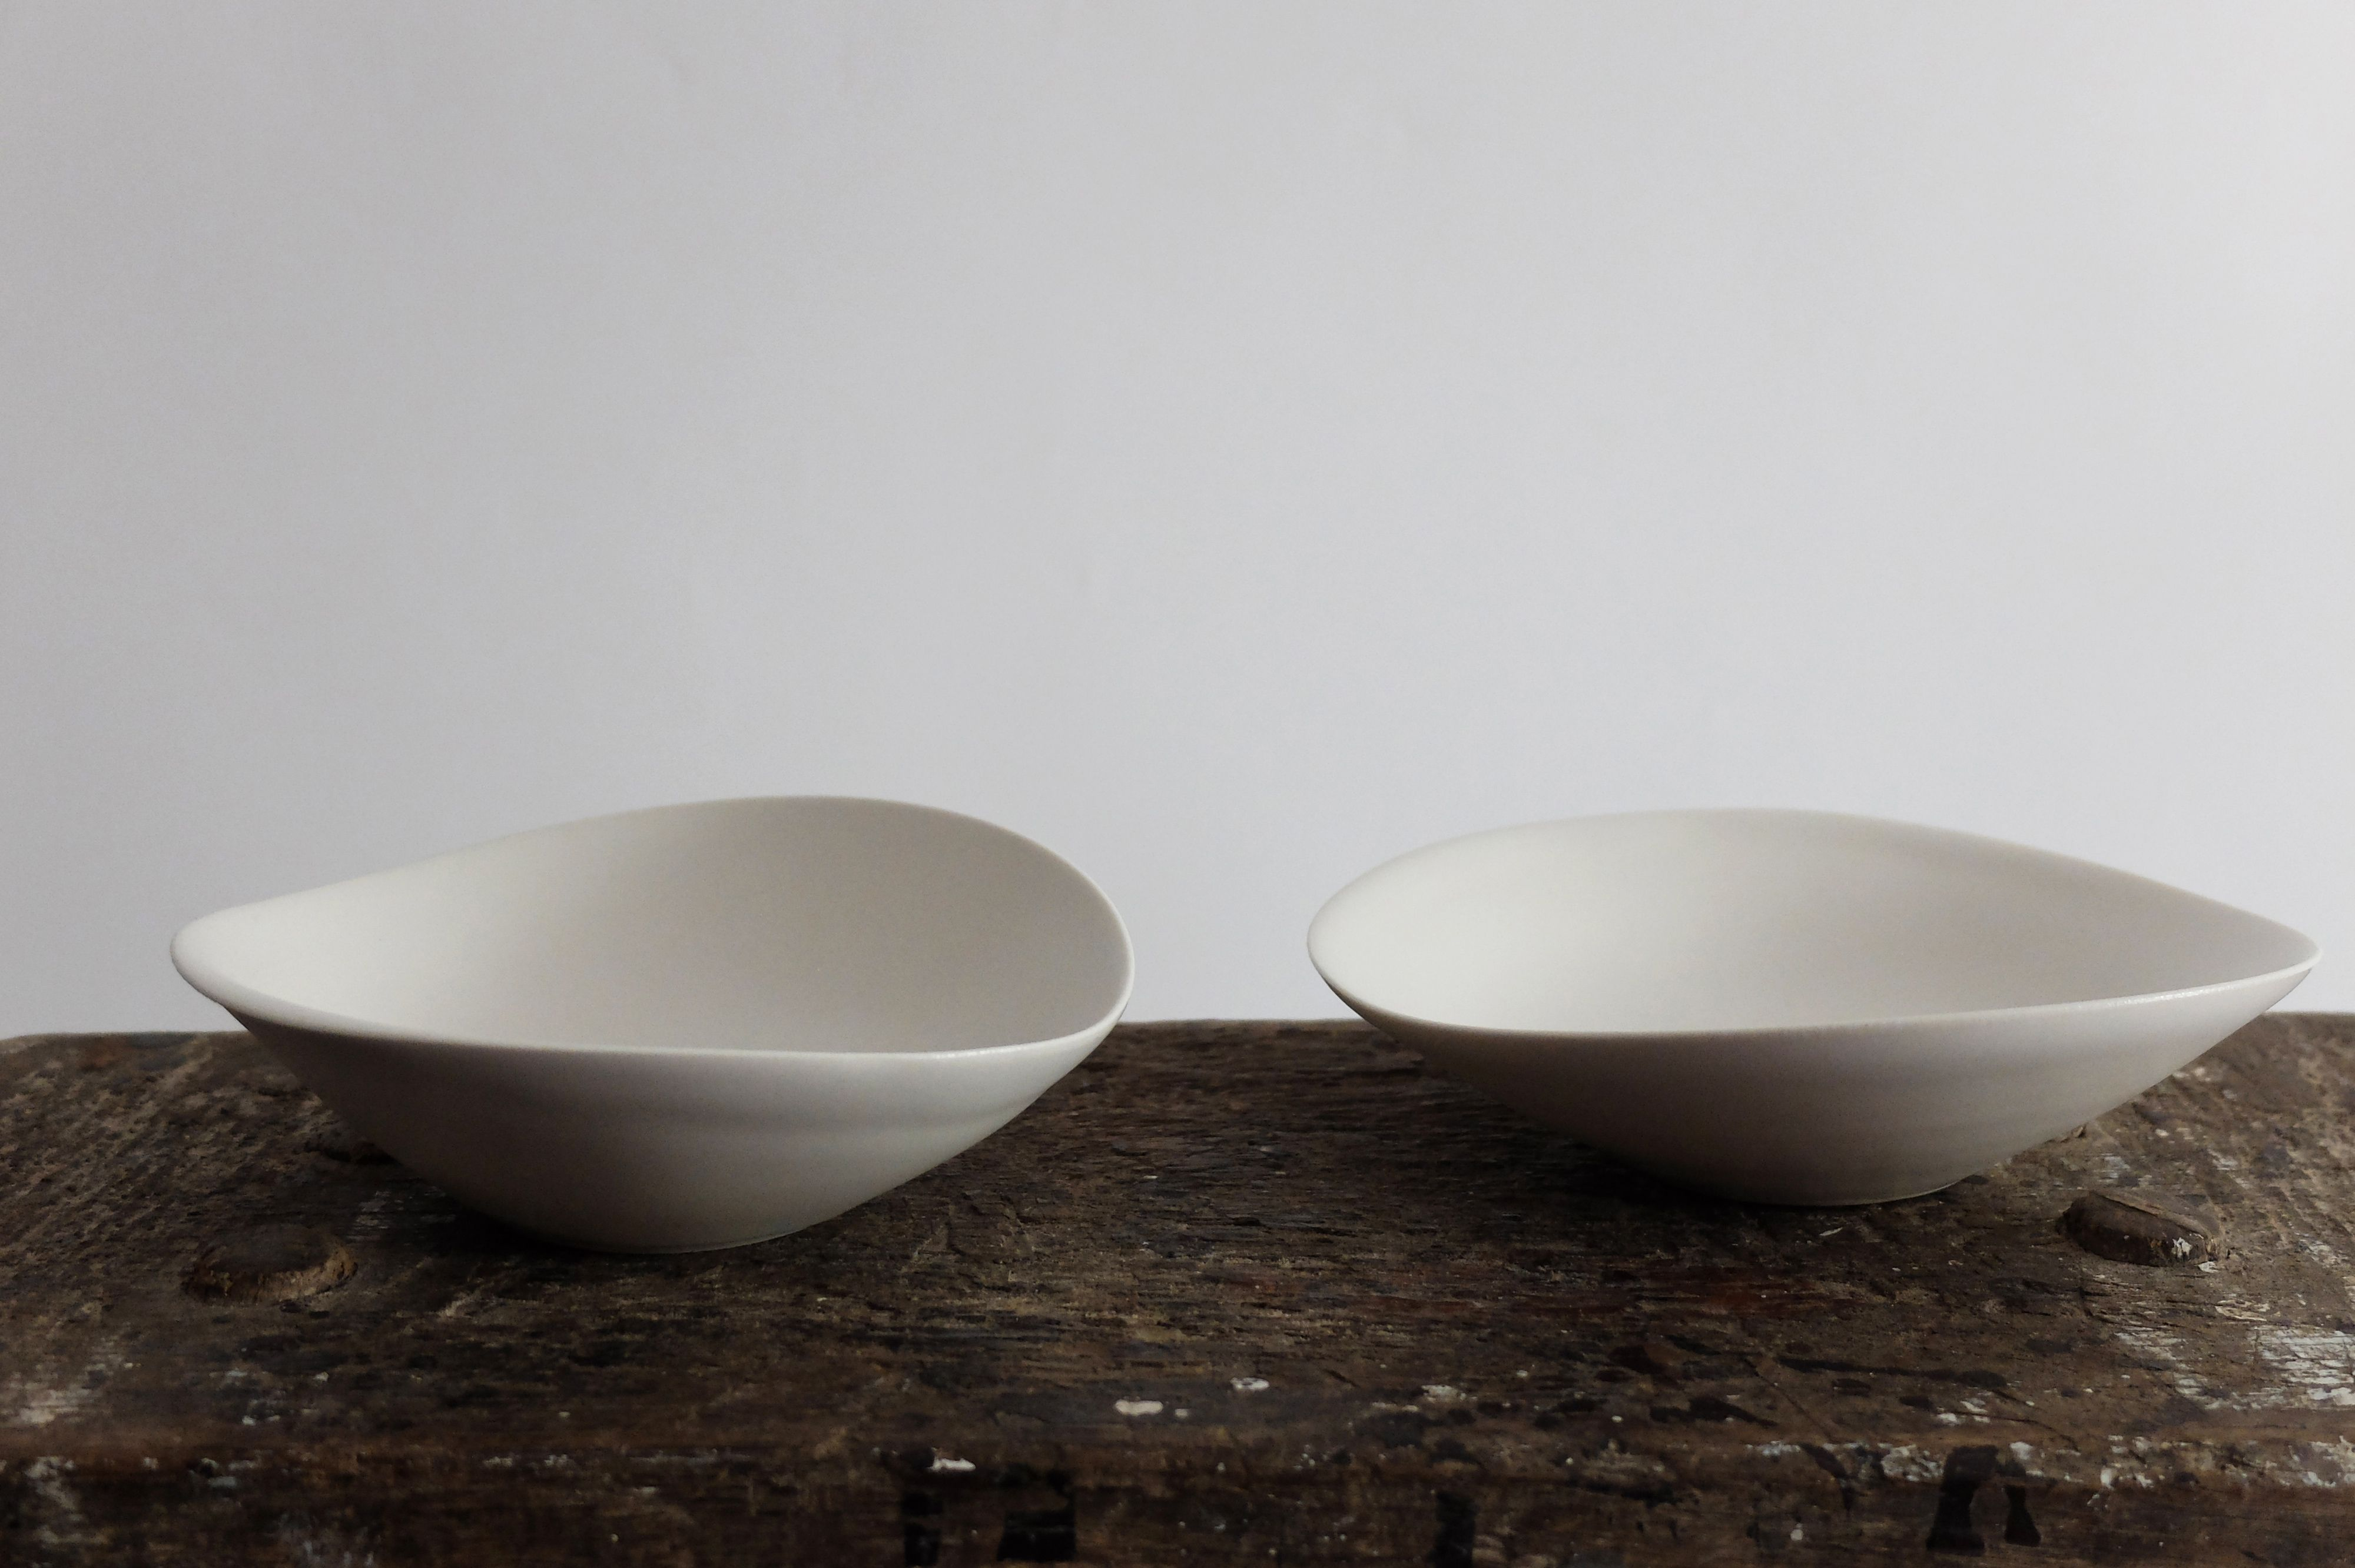 Bowls by Renowned Korean artist Hyejeong Kim available @ www.maudandmabel.com